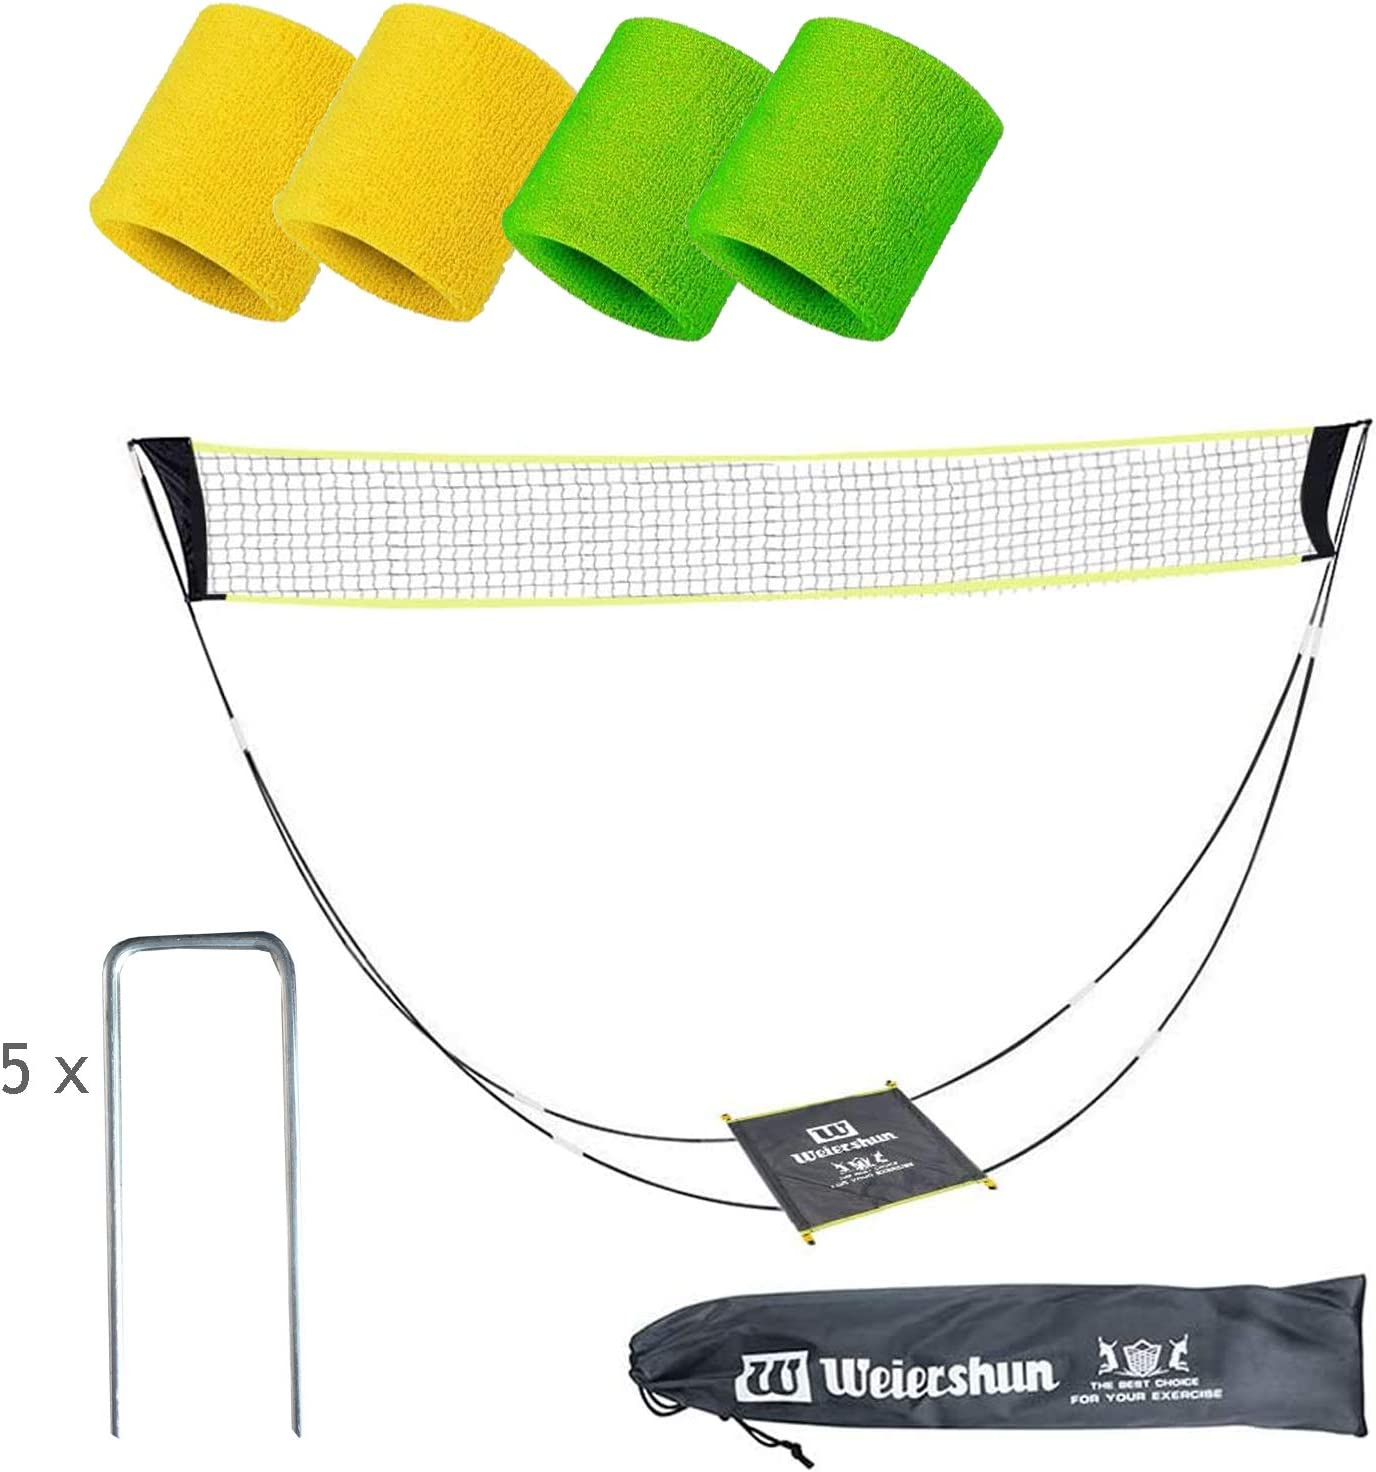 Backyard,Beach Leadaybetter Portable Volleyball Tennis Badminton Net with Stand Carry Bag,Foldable Freestanding Net Set for Outdoor//Indoor Court